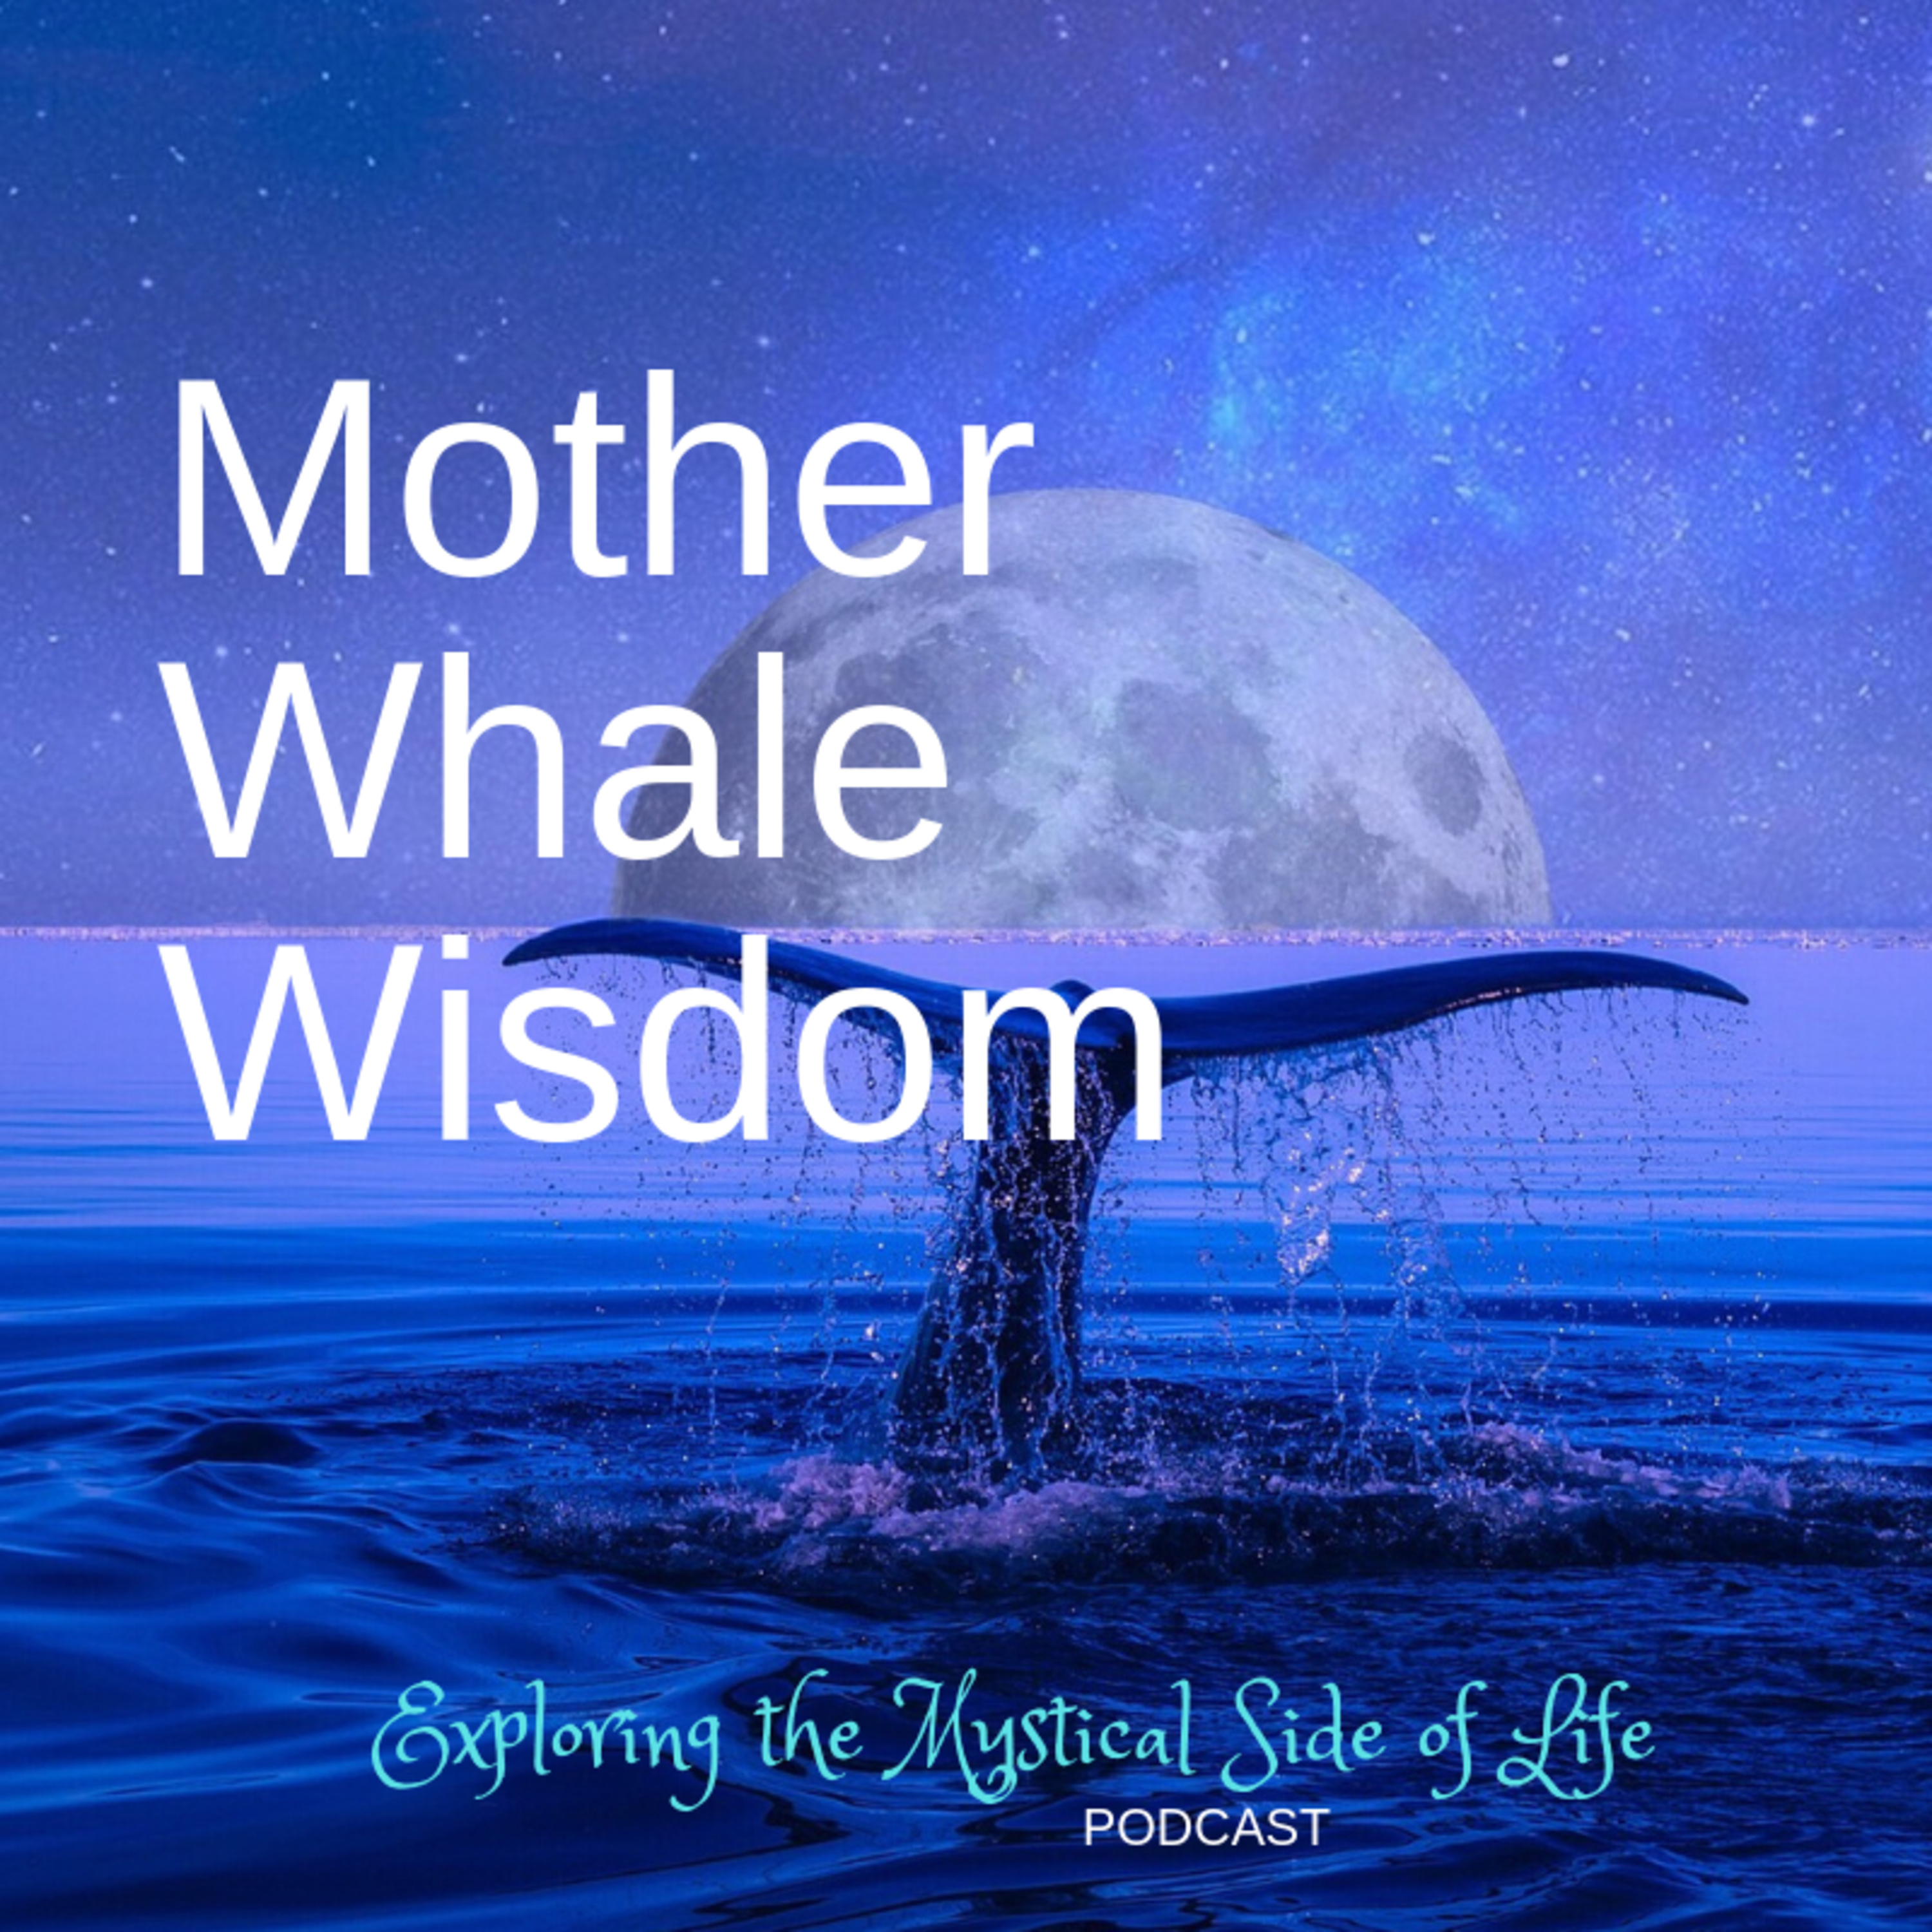 Mother Whale Wisdom